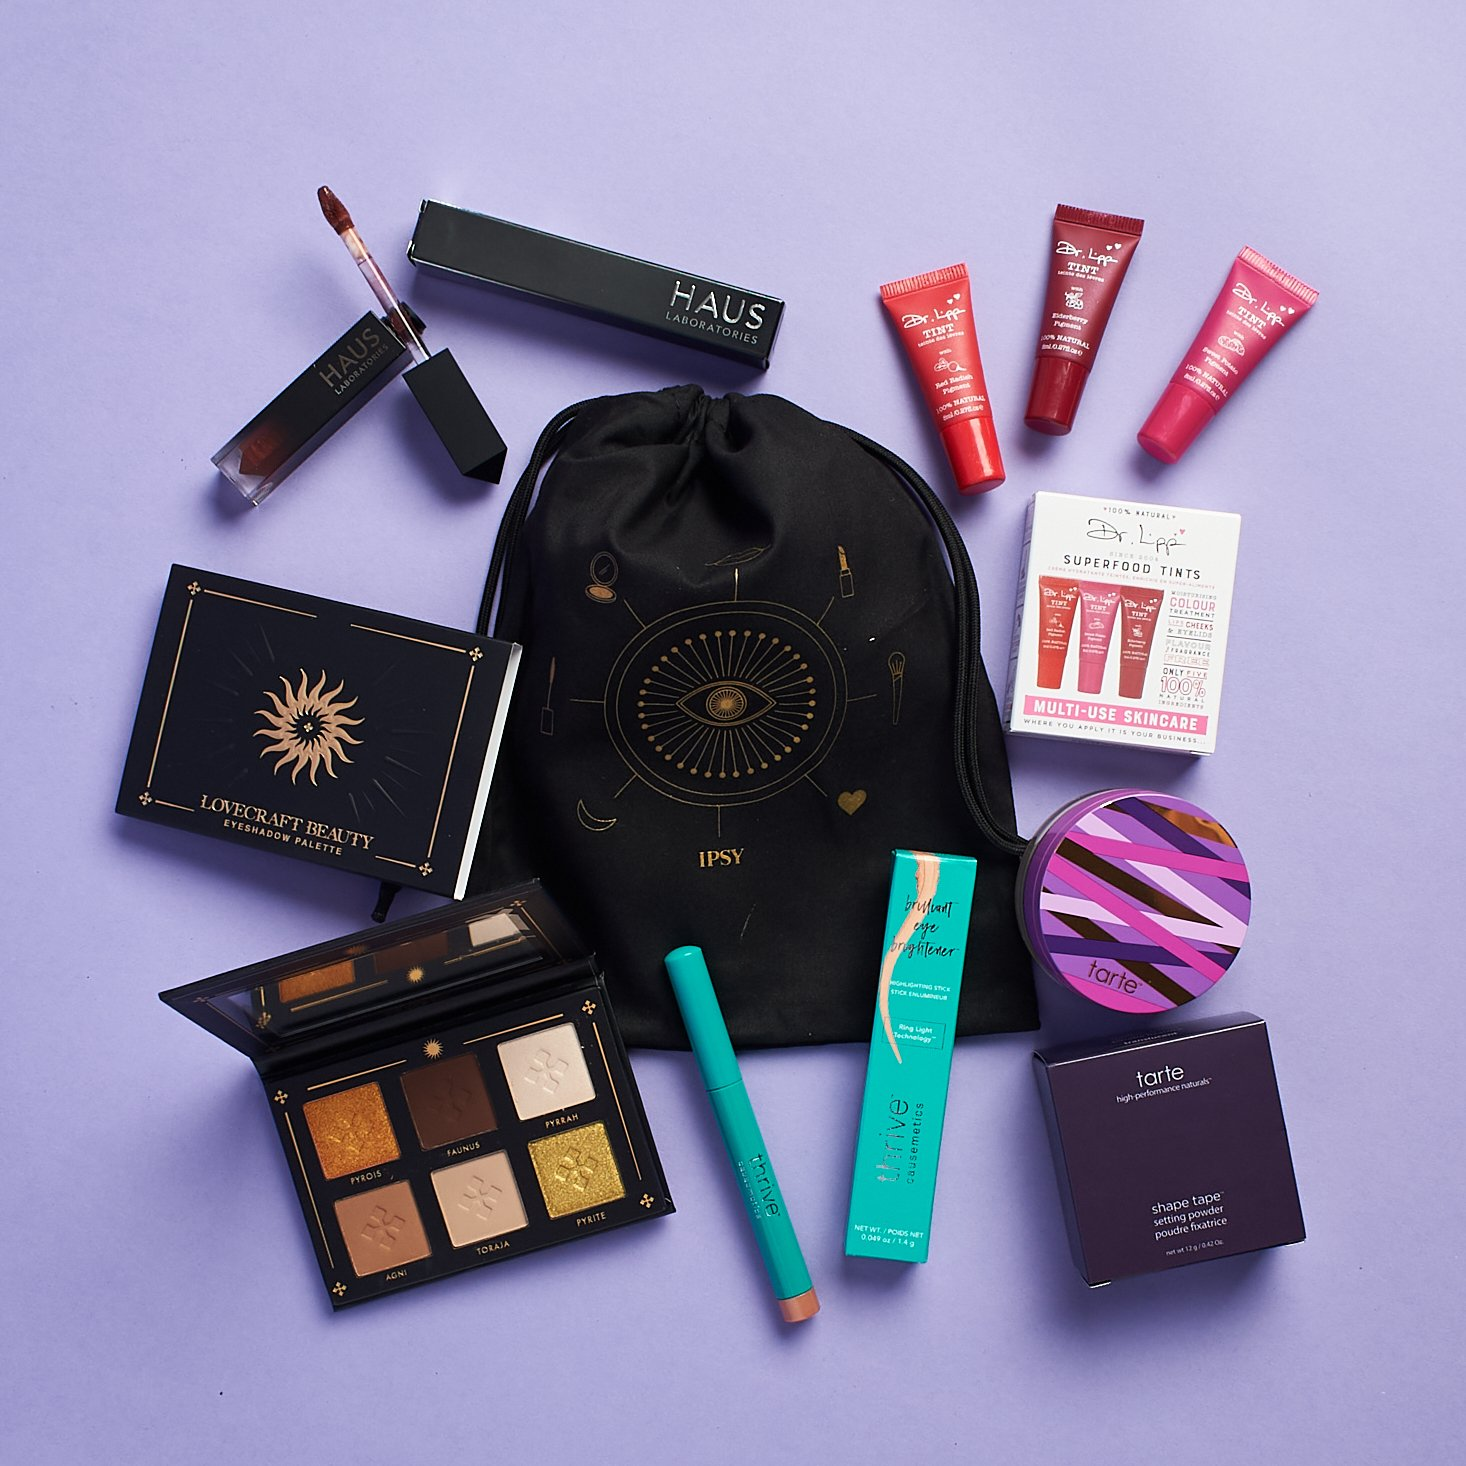 IPSY Glam Bag Plus Review – October 2020